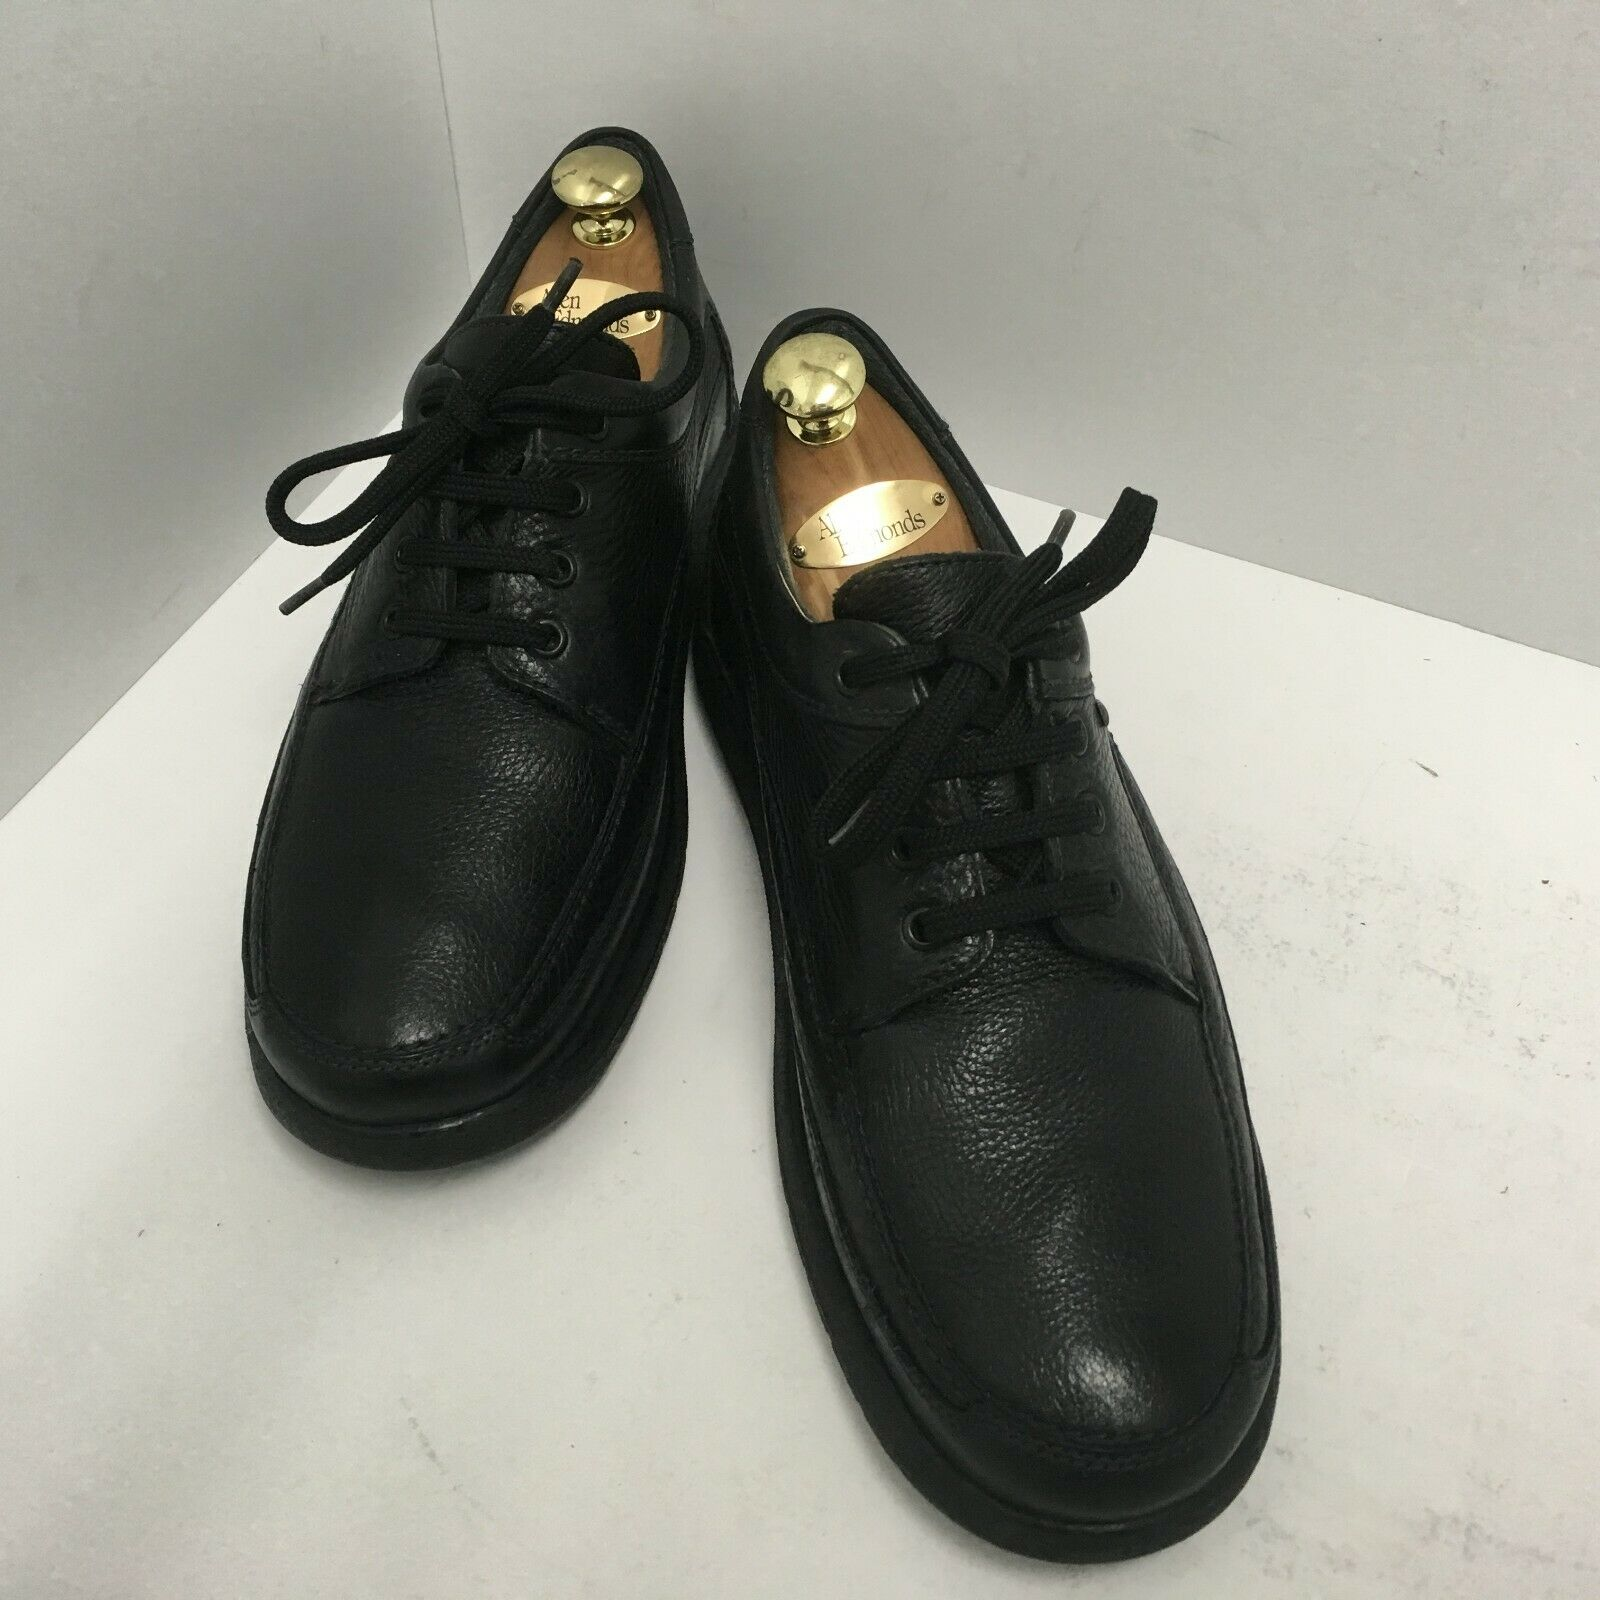 Mephisto Gore-Tex Black Leather Lace Up Walking shoes  Travel's  Men's Sz 9.5